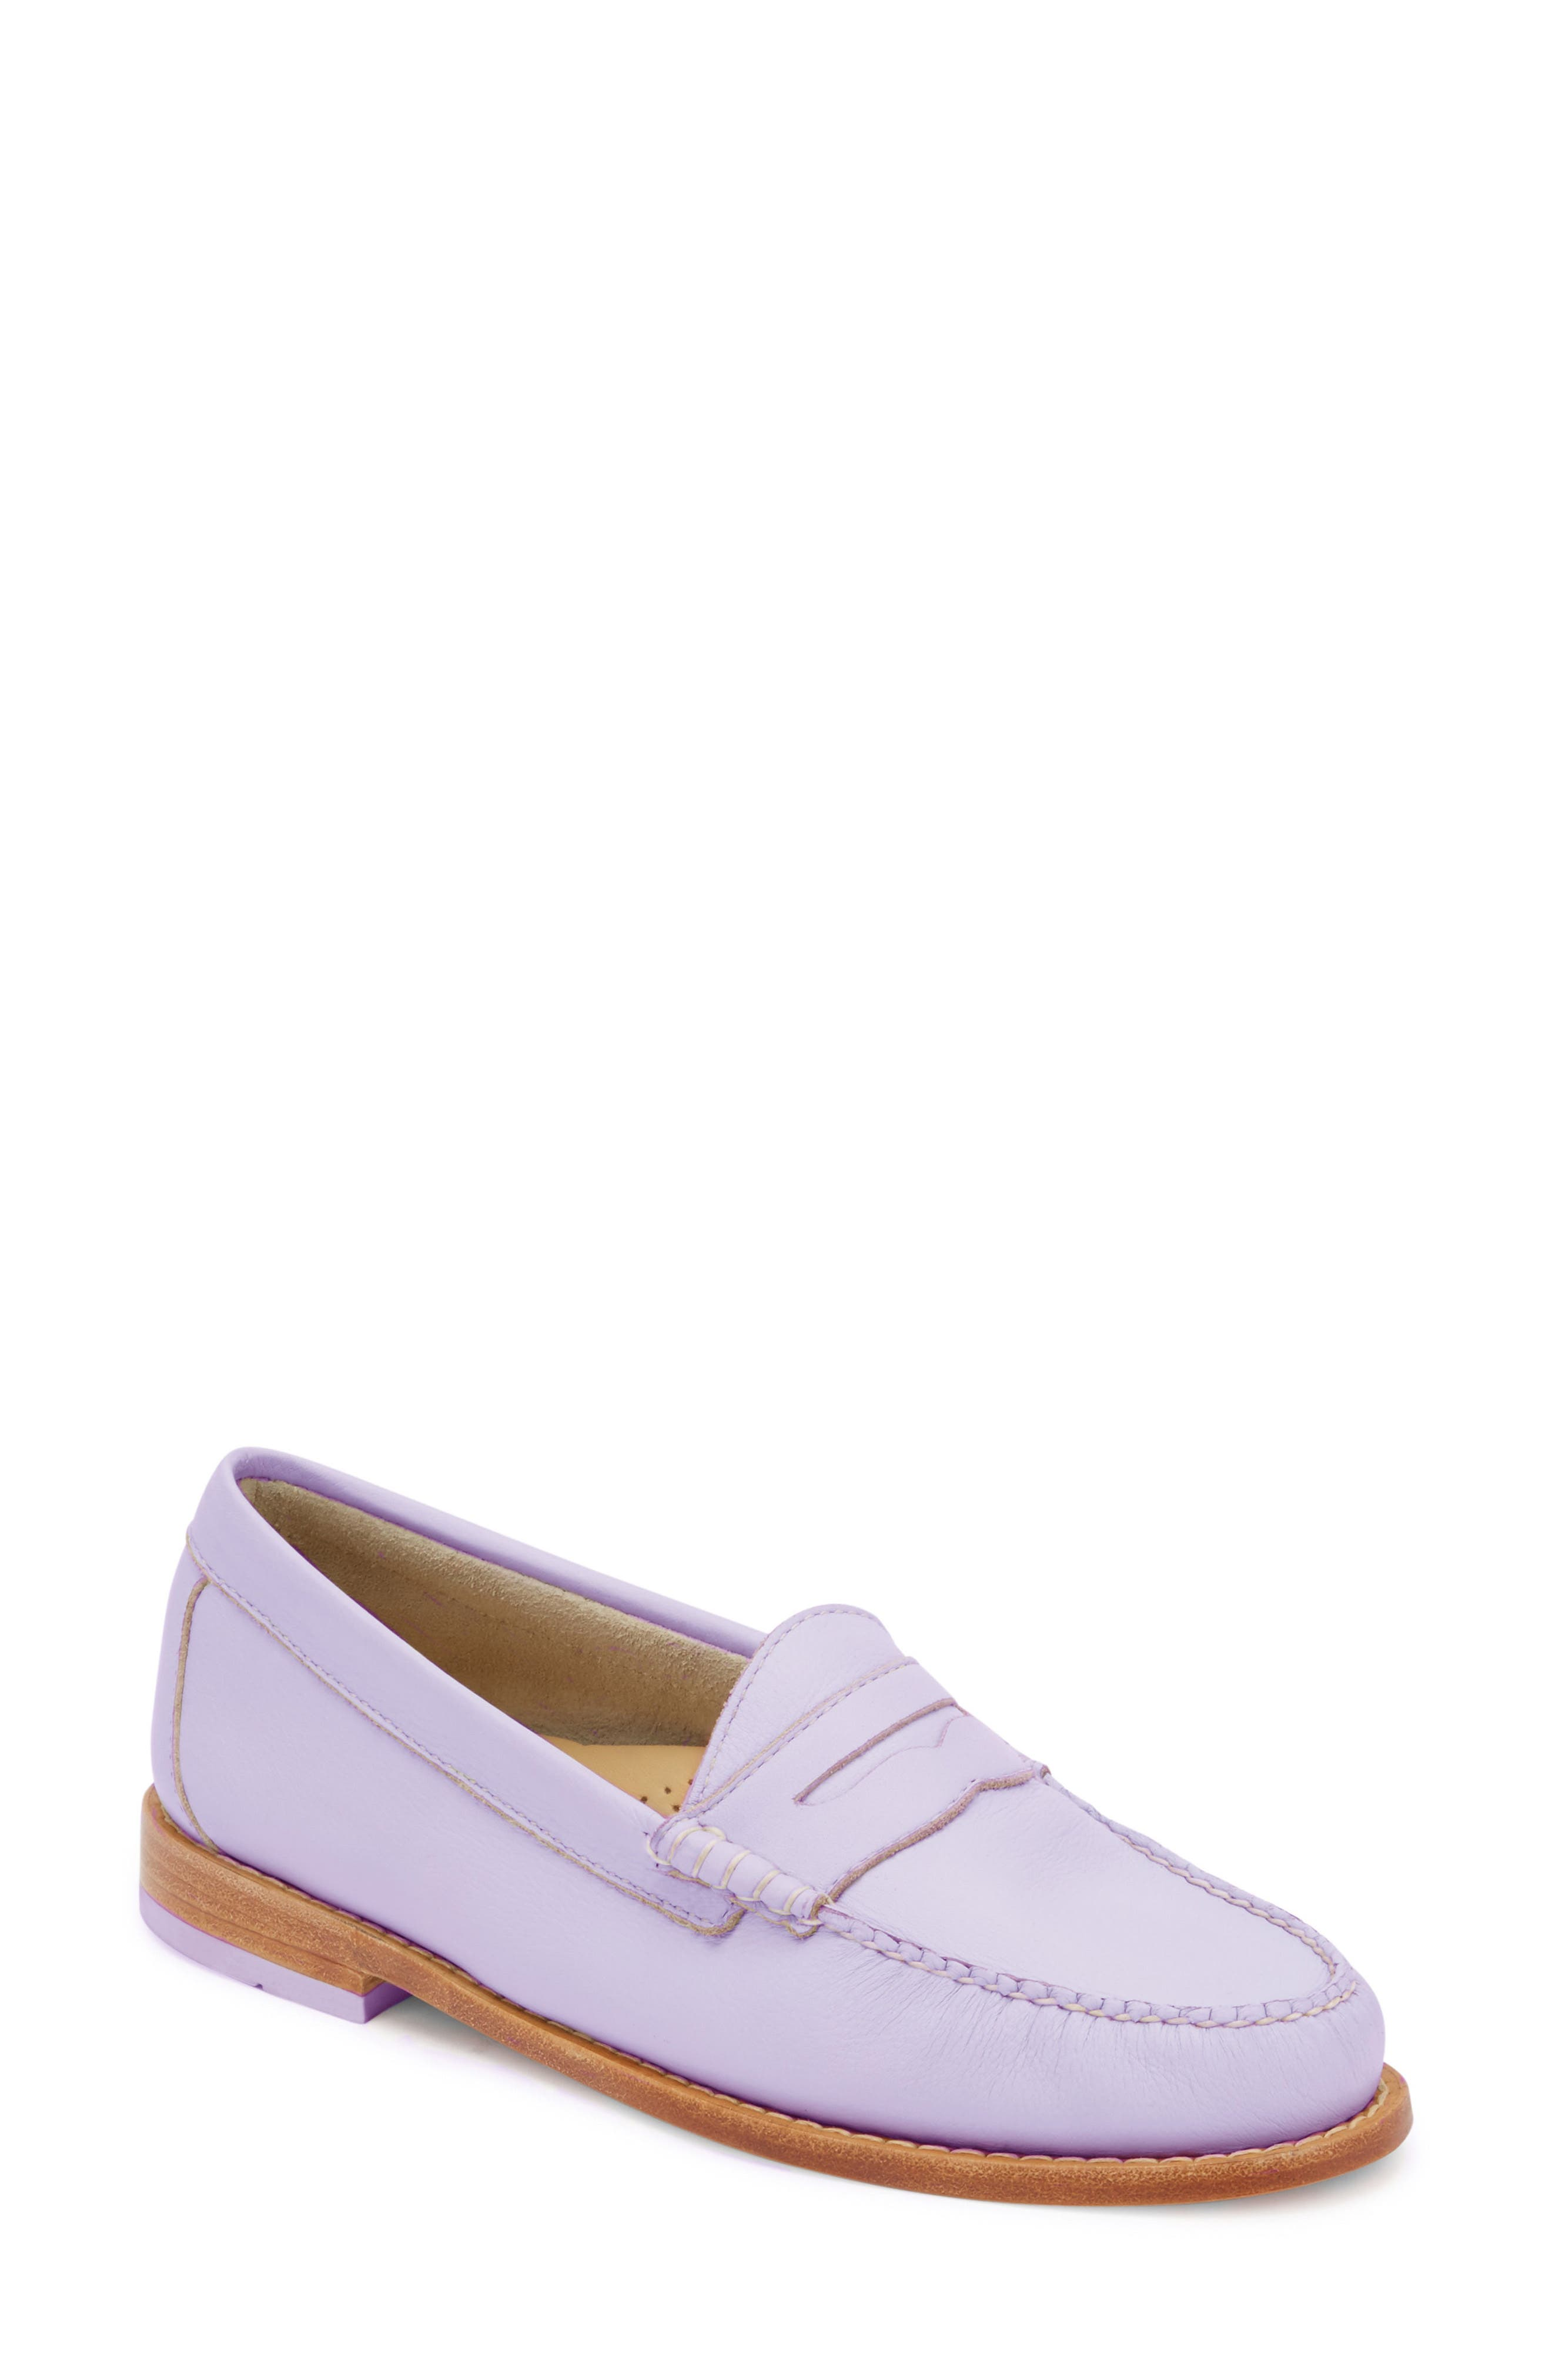 'Whitney' Loafer,                             Main thumbnail 12, color,